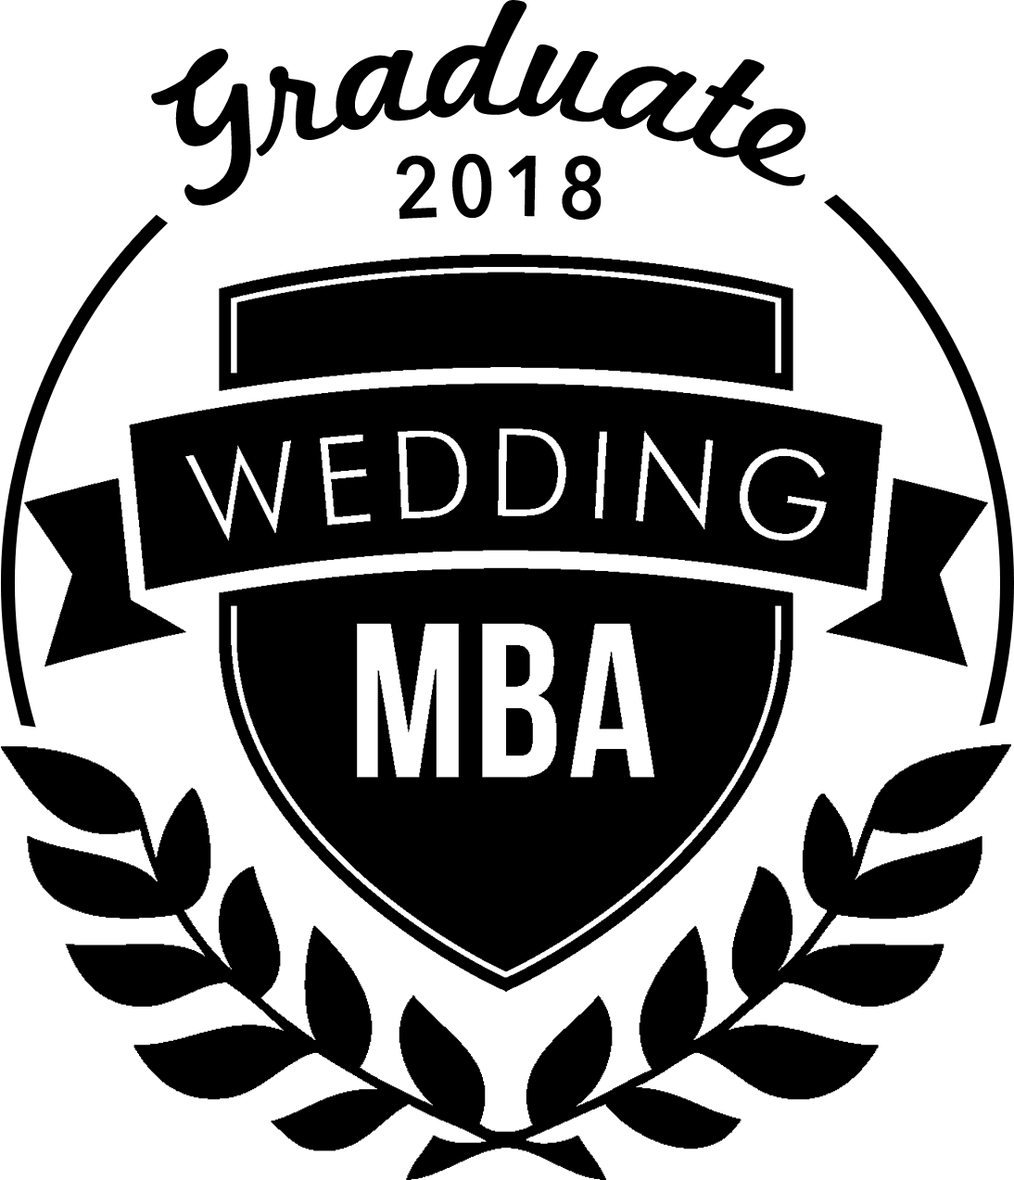 I am a 2018 graduate of the Wedding MBA that I attended in November. I returned with a lot of content to make my business better for you (and me too)!